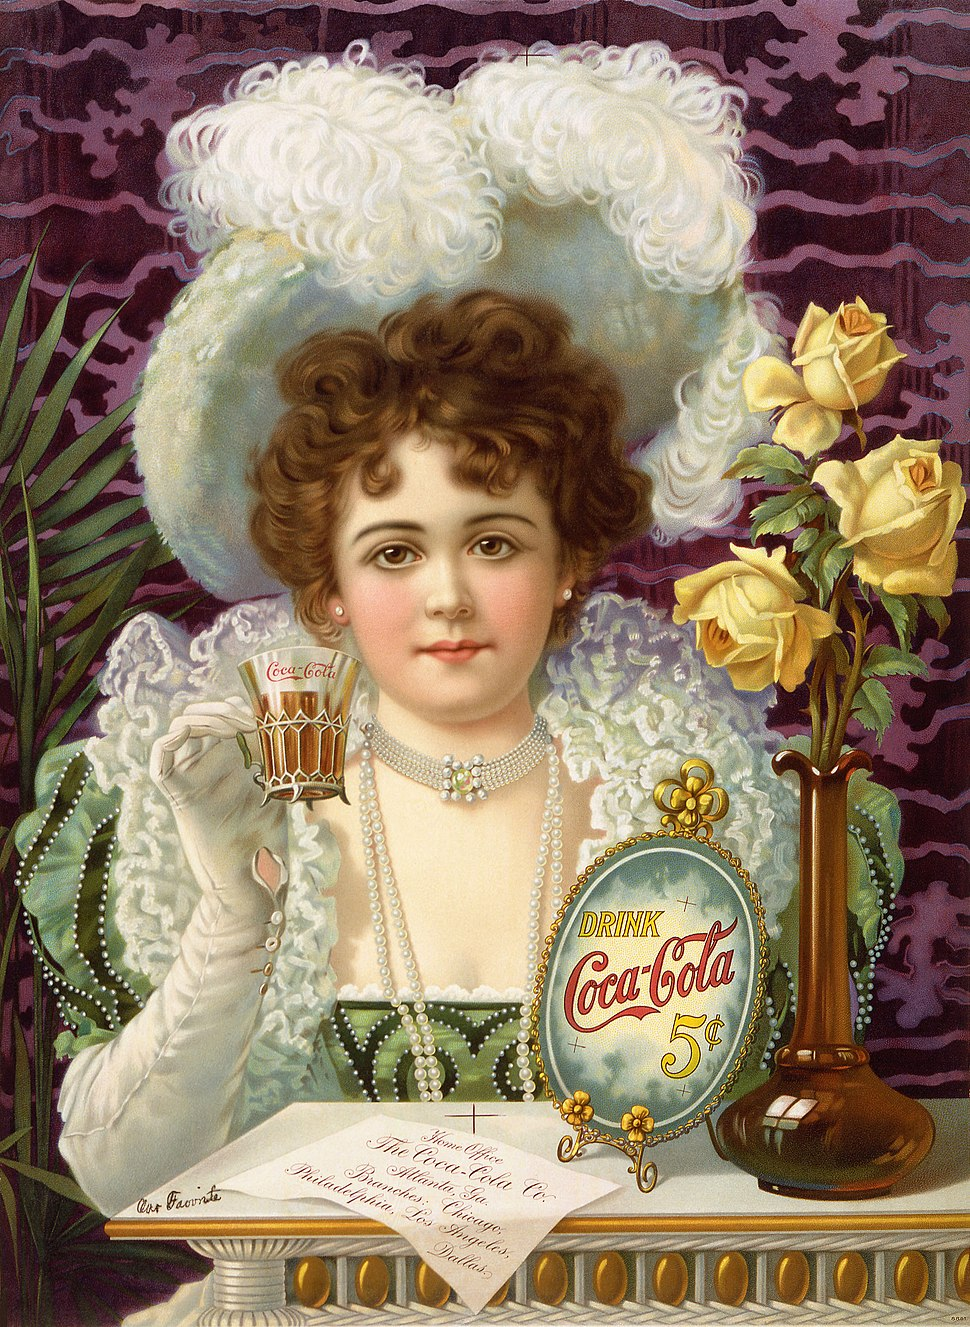 Cocacola-5cents-1900 edit1